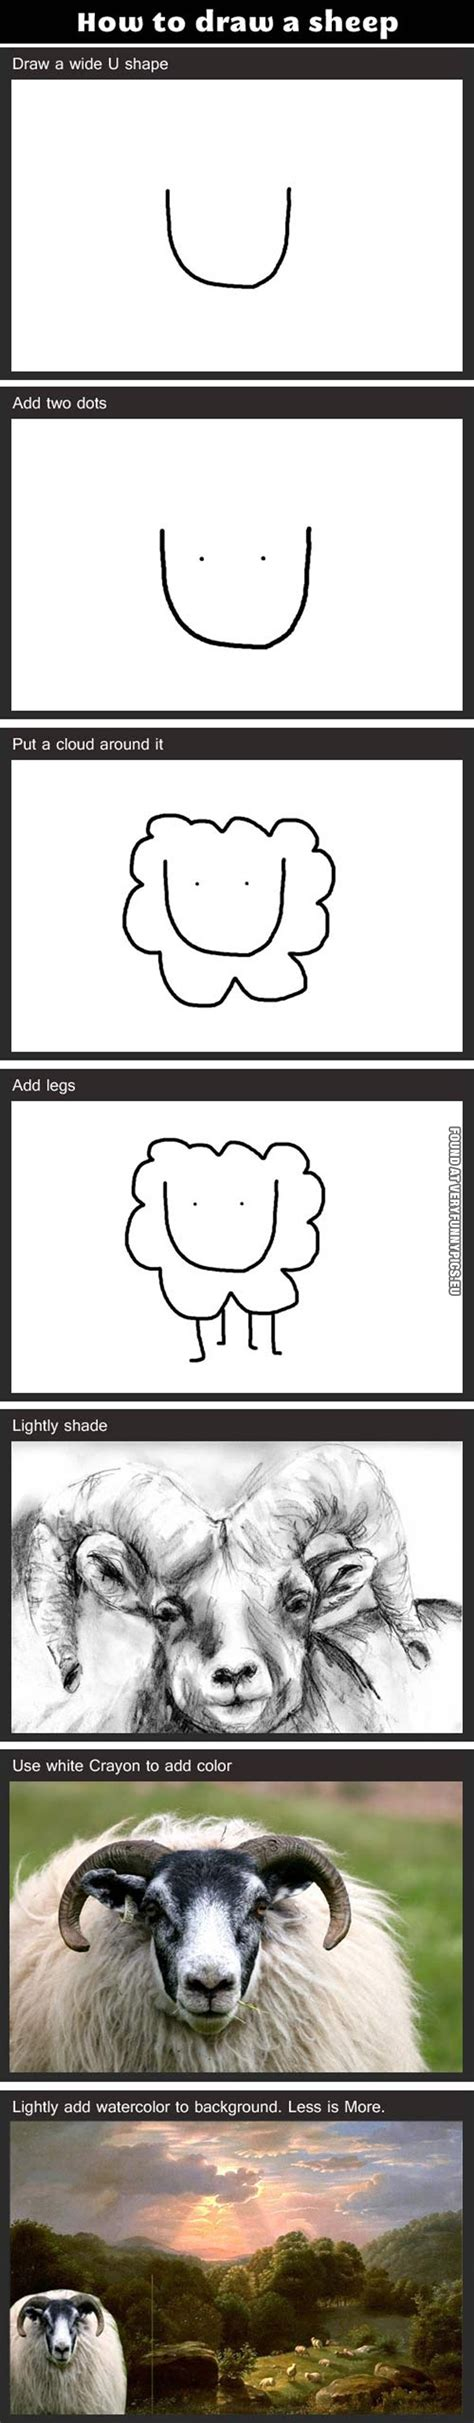 how to sheep how to draw a sheep pics